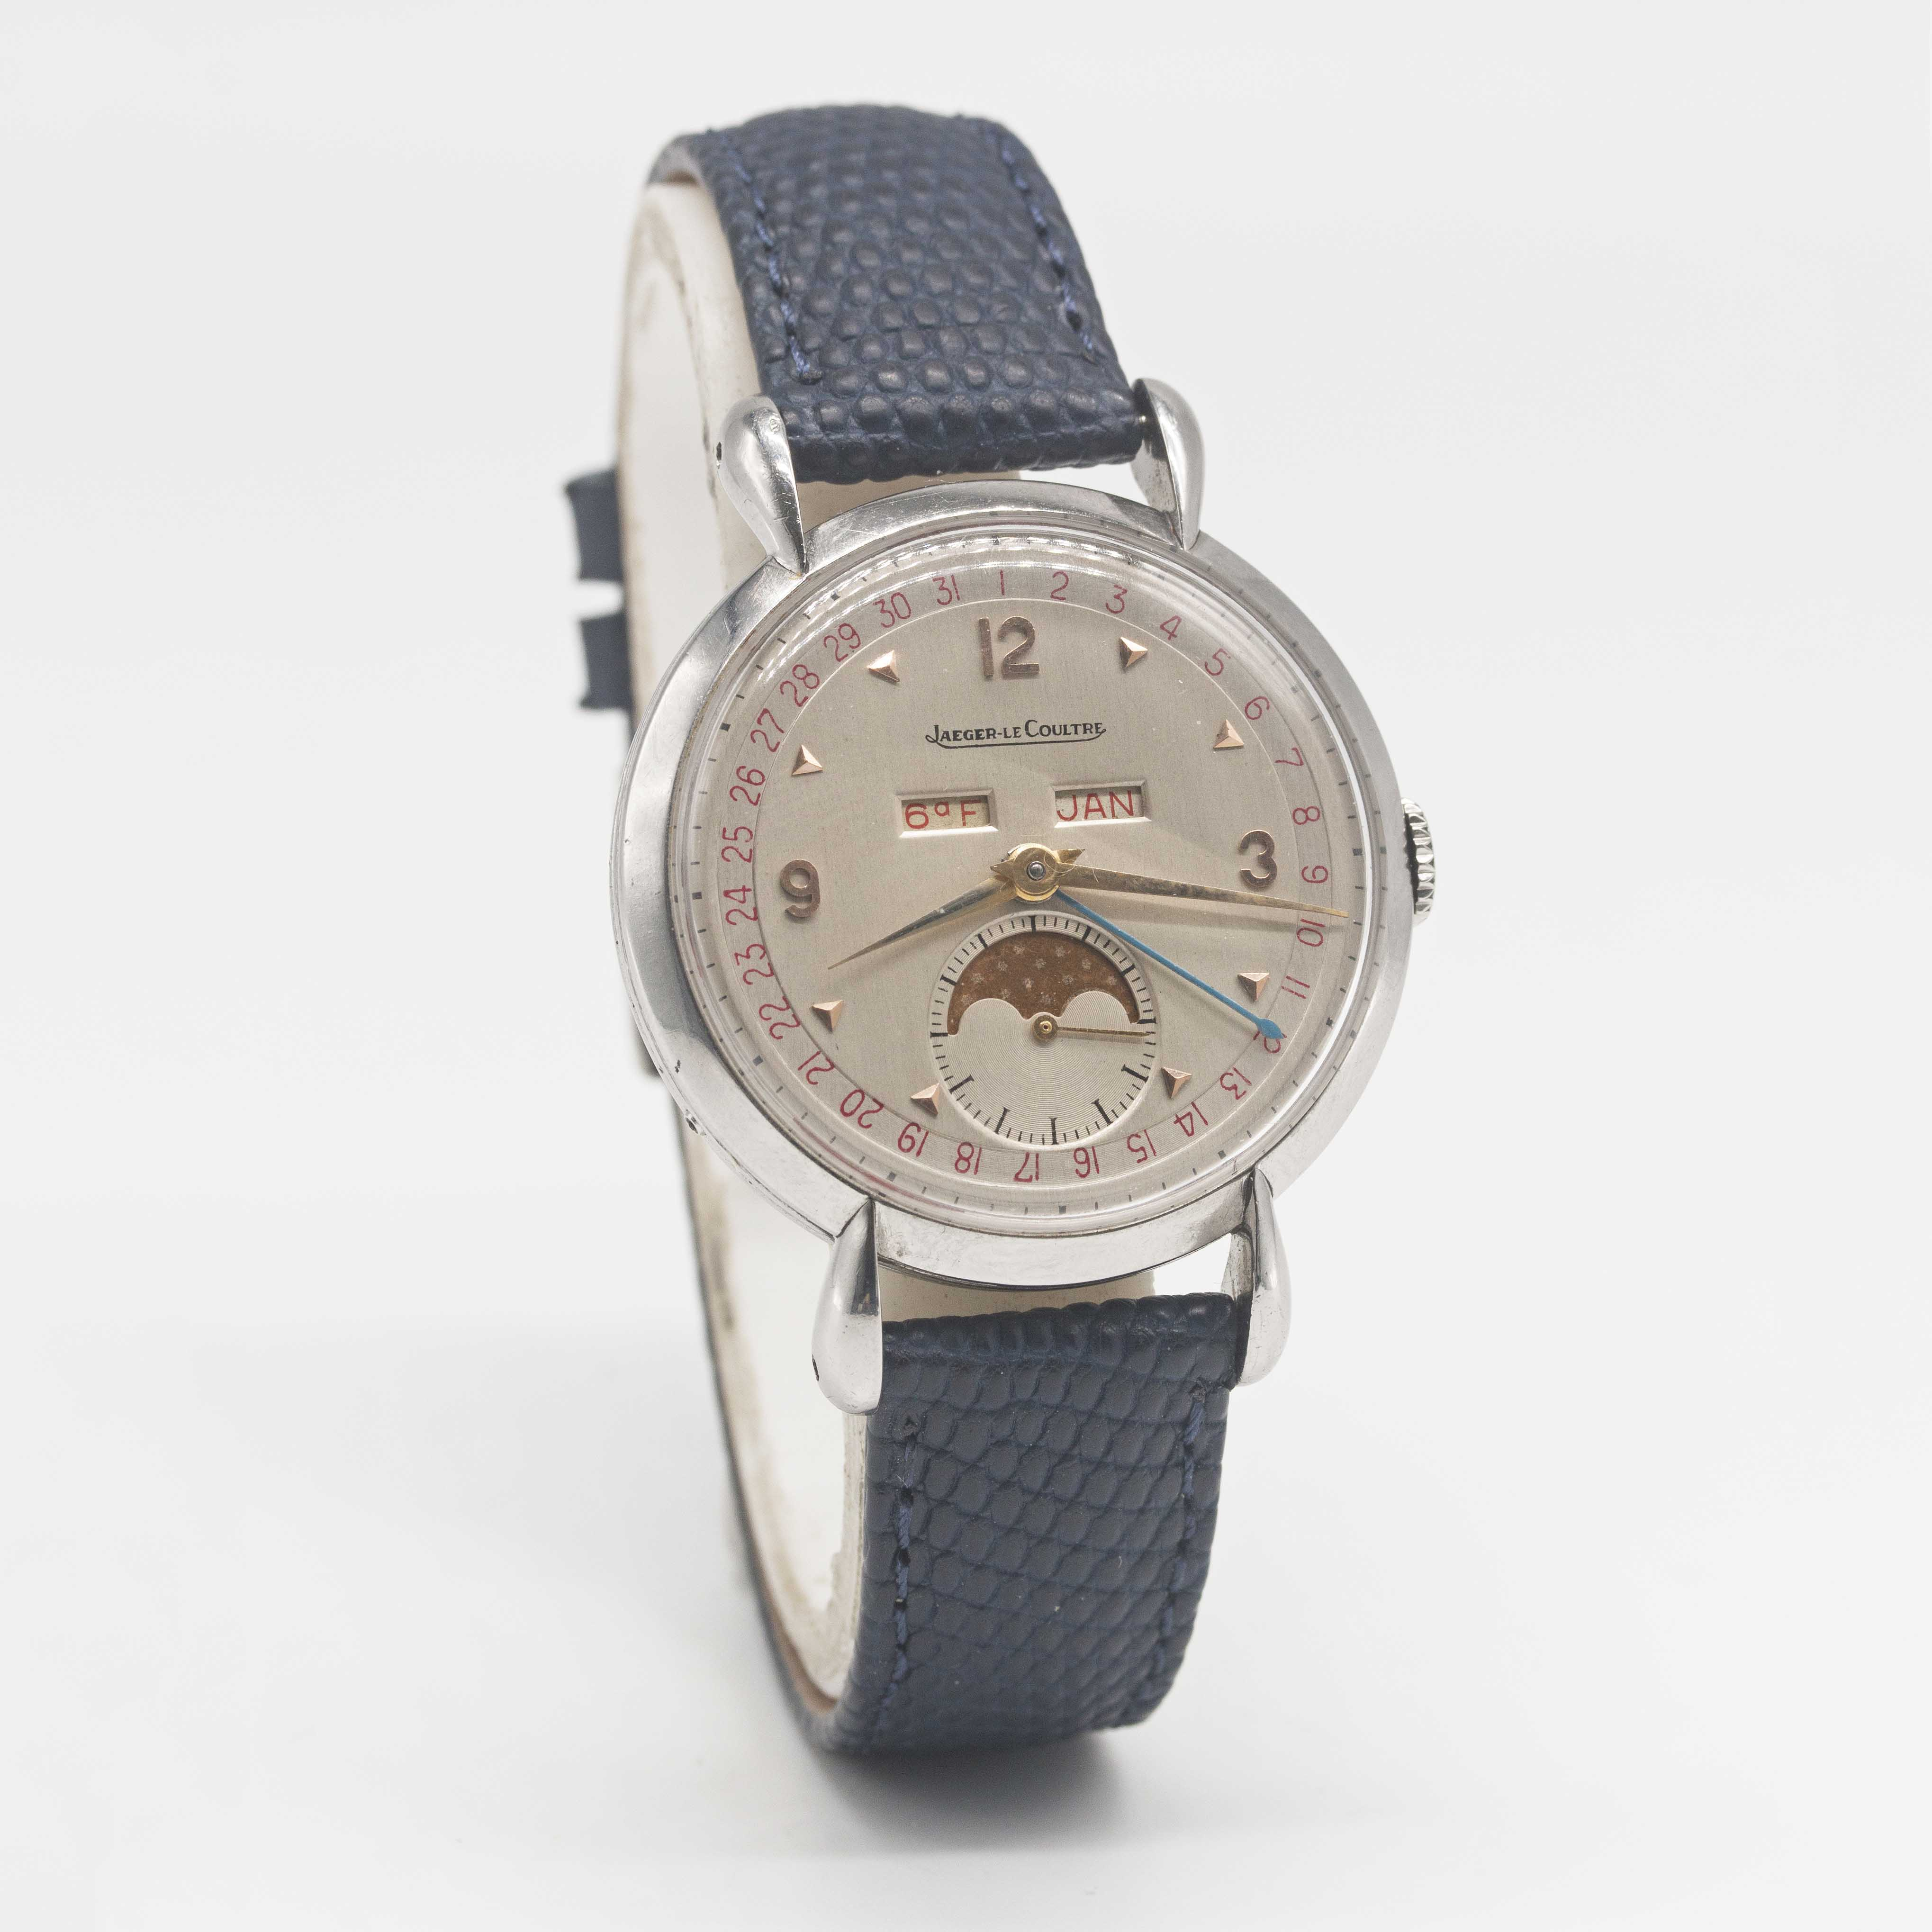 Lot 20 - A GENTLEMAN'S LARGE SIZE STAINLESS STEEL JAEGER LECOULTRE TRIPLE CALENDAR MOONPHASE WRIST WATCH